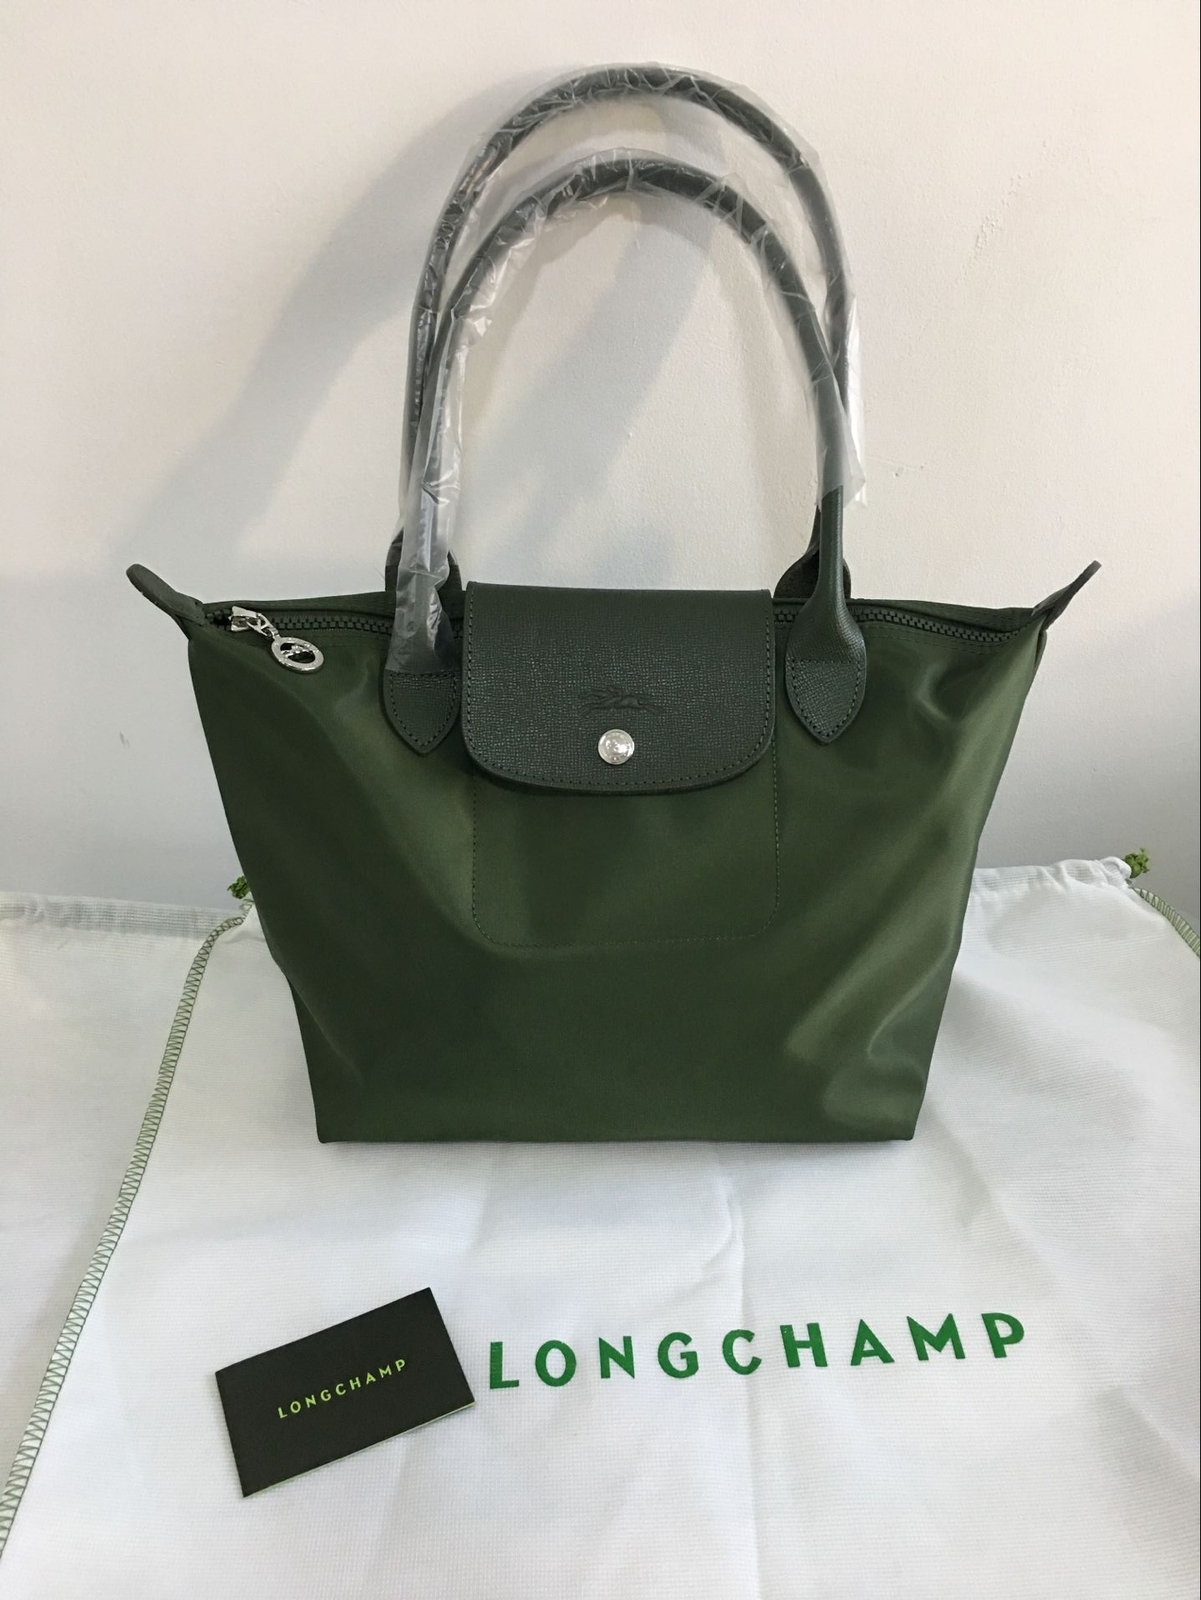 dcec6019ee0a Longchamp Le Pliage Neo Small Tote Bag Moss and 27 similar items. Qq  20171008154604